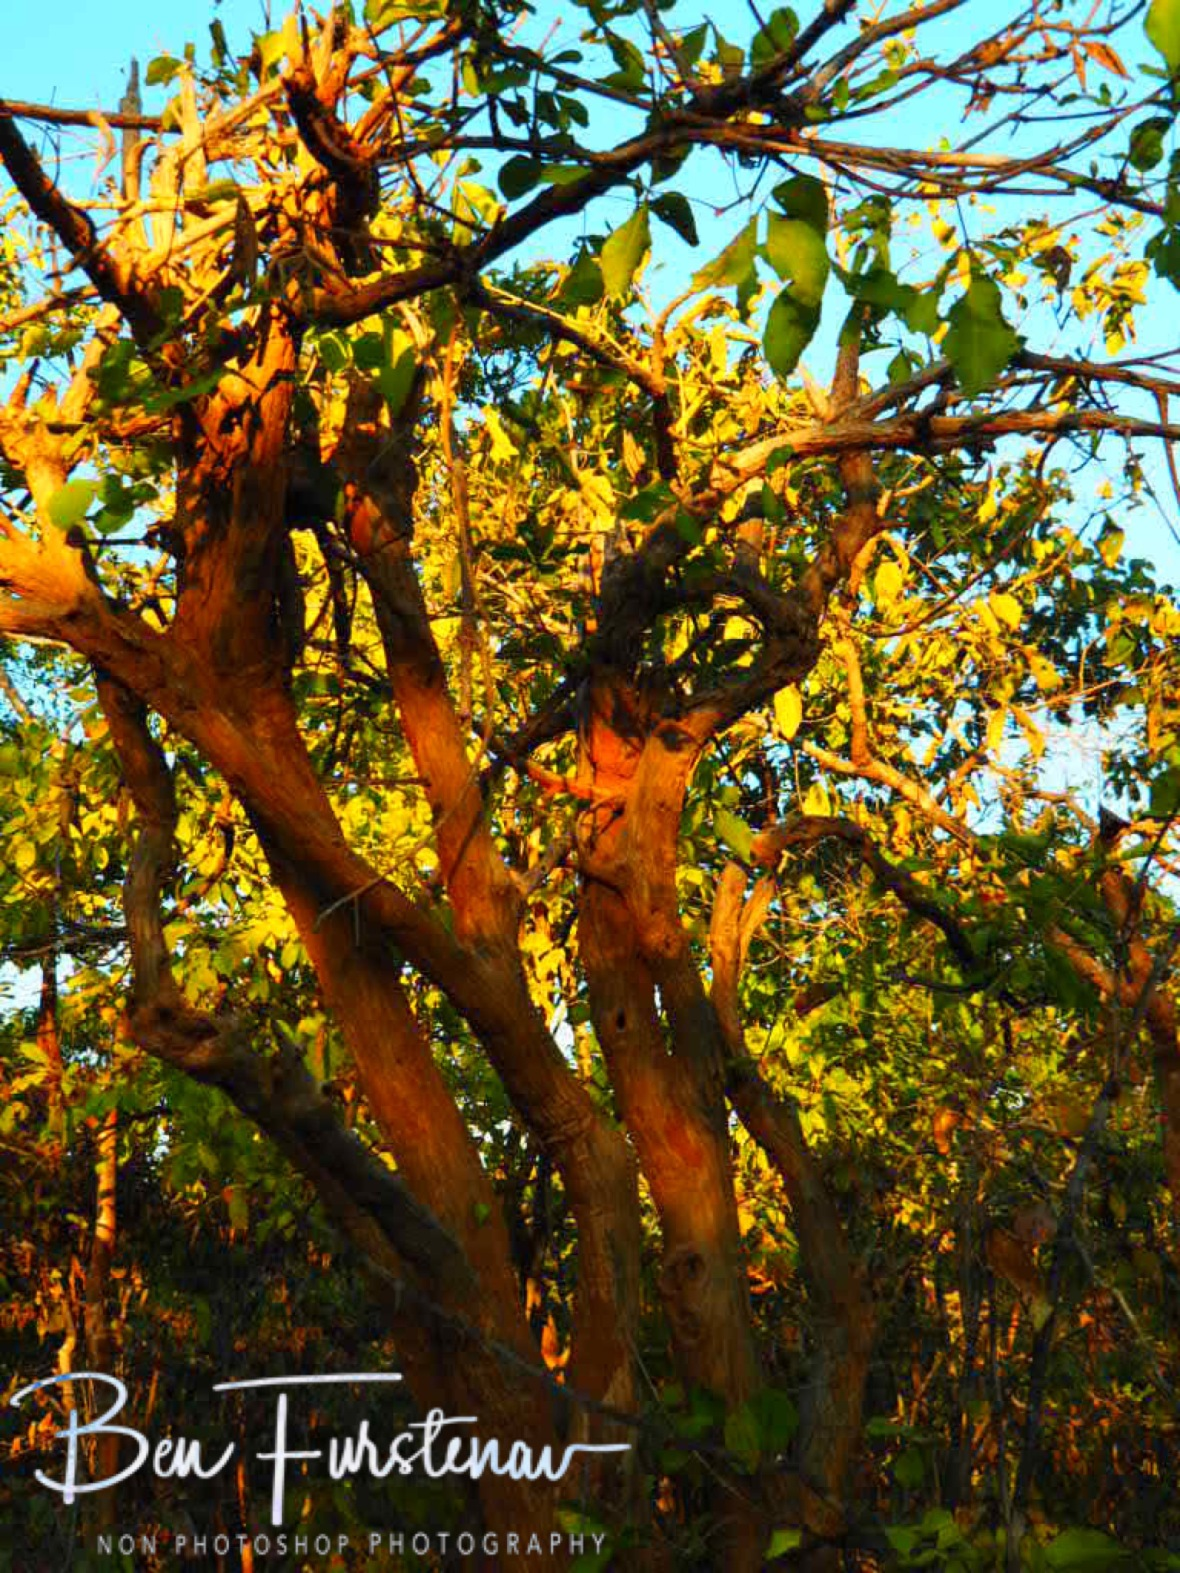 Colourful tree display, Vwaza Marsh National Reserve, Malawi